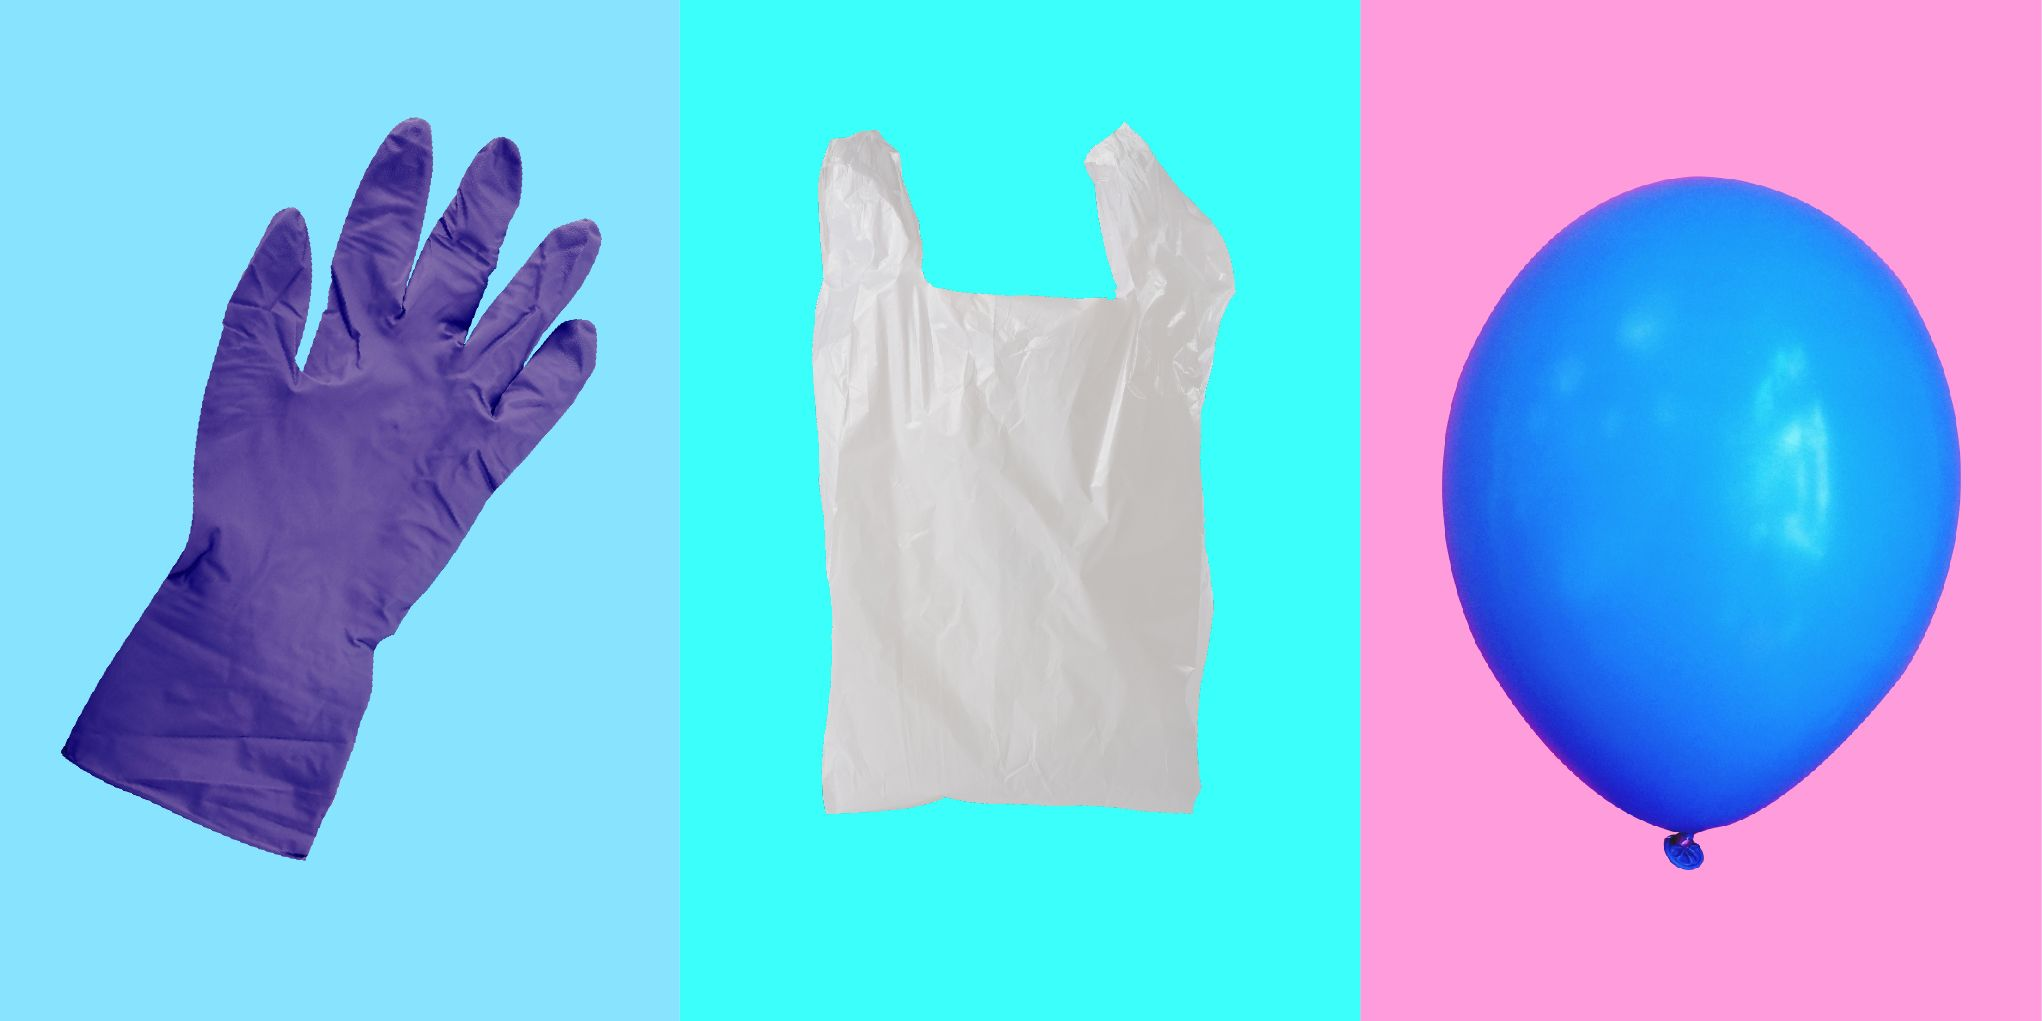 Things Not To Use Instead Of Condoms Condom Barrier Method Birth Control Substitutes Alternatives